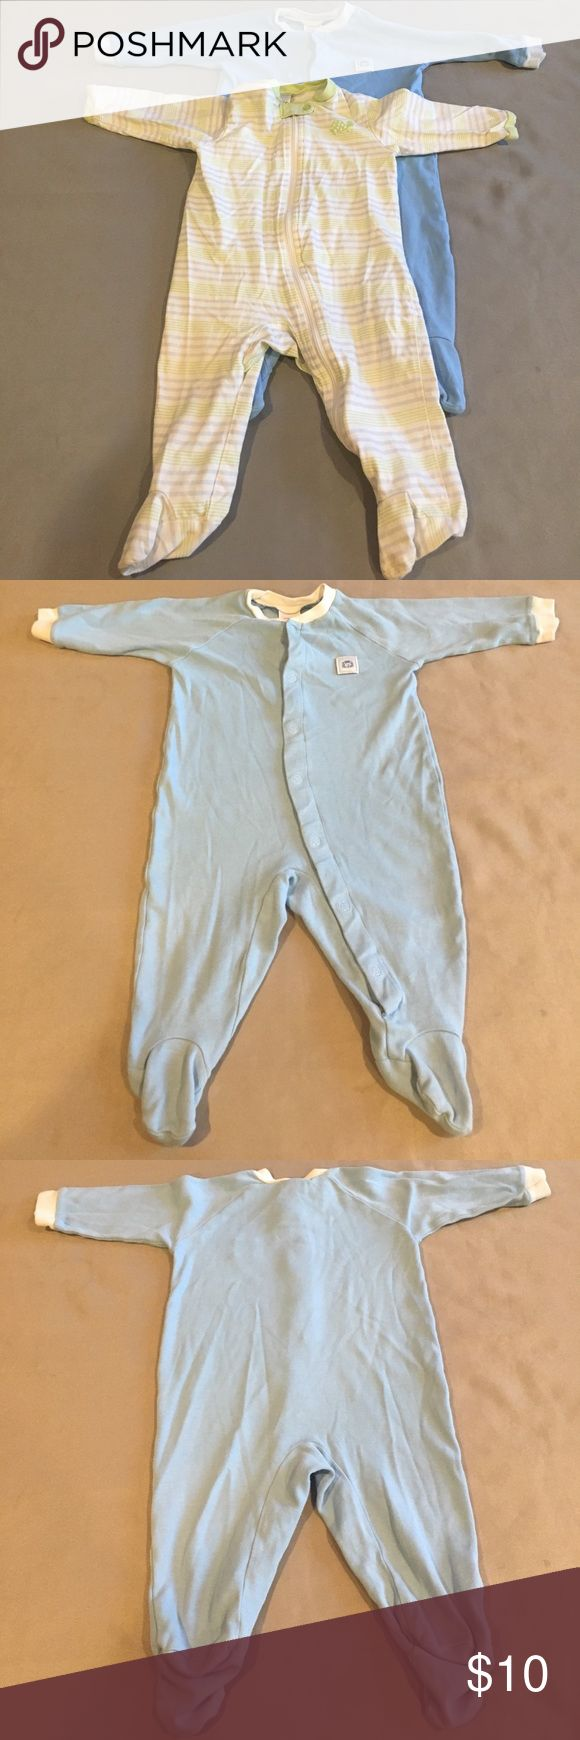 💰💰5 for $20  2 Footie Pajamas 2 Footie Pajamas. Gently used. Blue footies with a little lion and white, blue and green striped footies with a turtle.  Bundle 241.      💰💰💰💰💰 You can bundle any 5 or more kids listings with 💰💰5 for $20 and make an offer. This makes all listing $4 each. If you want more then 5 listings please make the appropriate offer. I am willing to mix and match non sale listings with sale listings as well. Please ask questions. Thank you. Circo, Baby Connection…